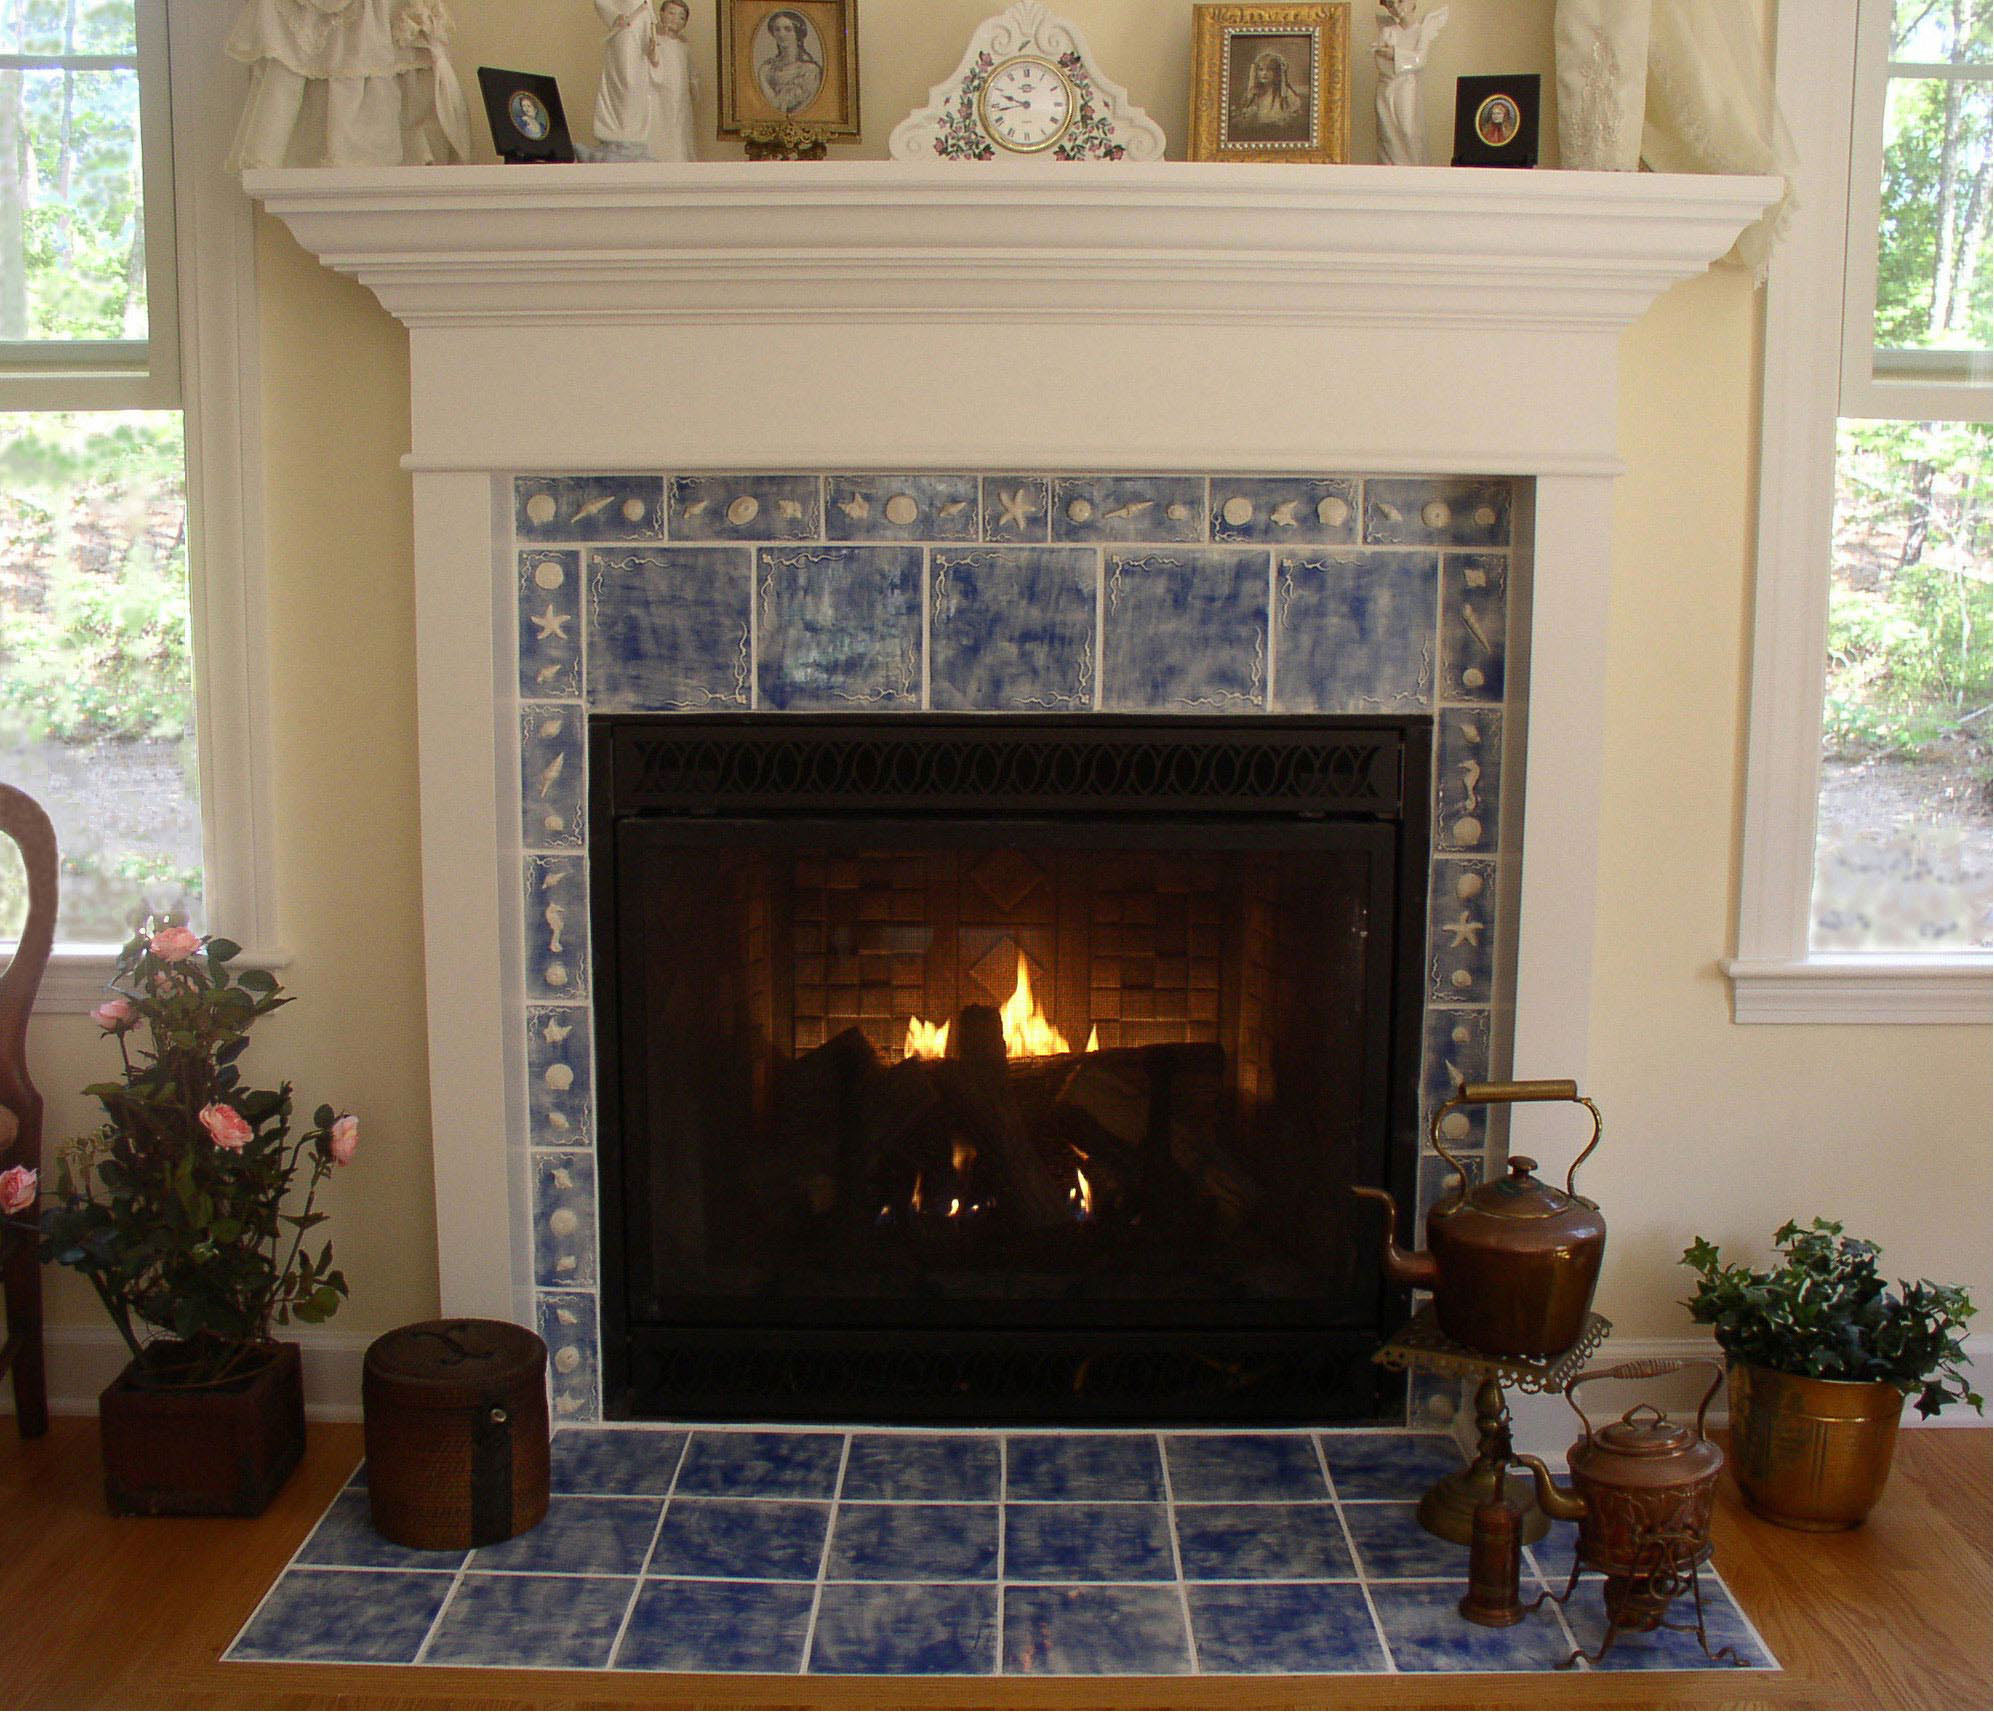 https://bestfireplaceideas.com/wp-content/uploads/2015/10/fireplace-with-tile-surround.jpg